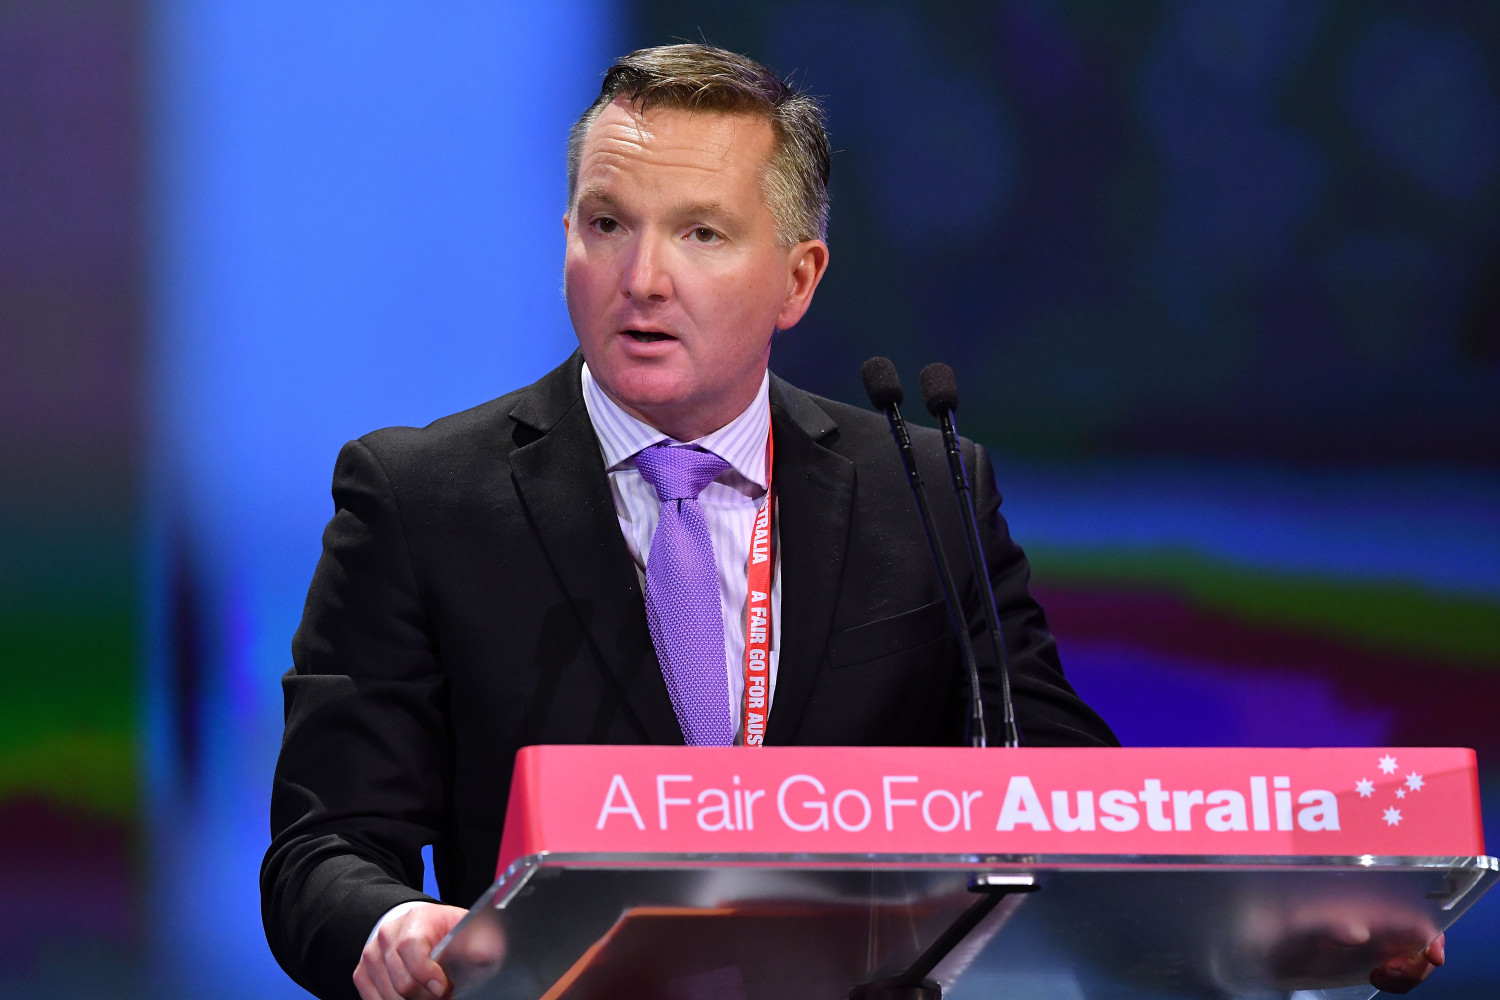 Shadow Treasurer Chris Bowen